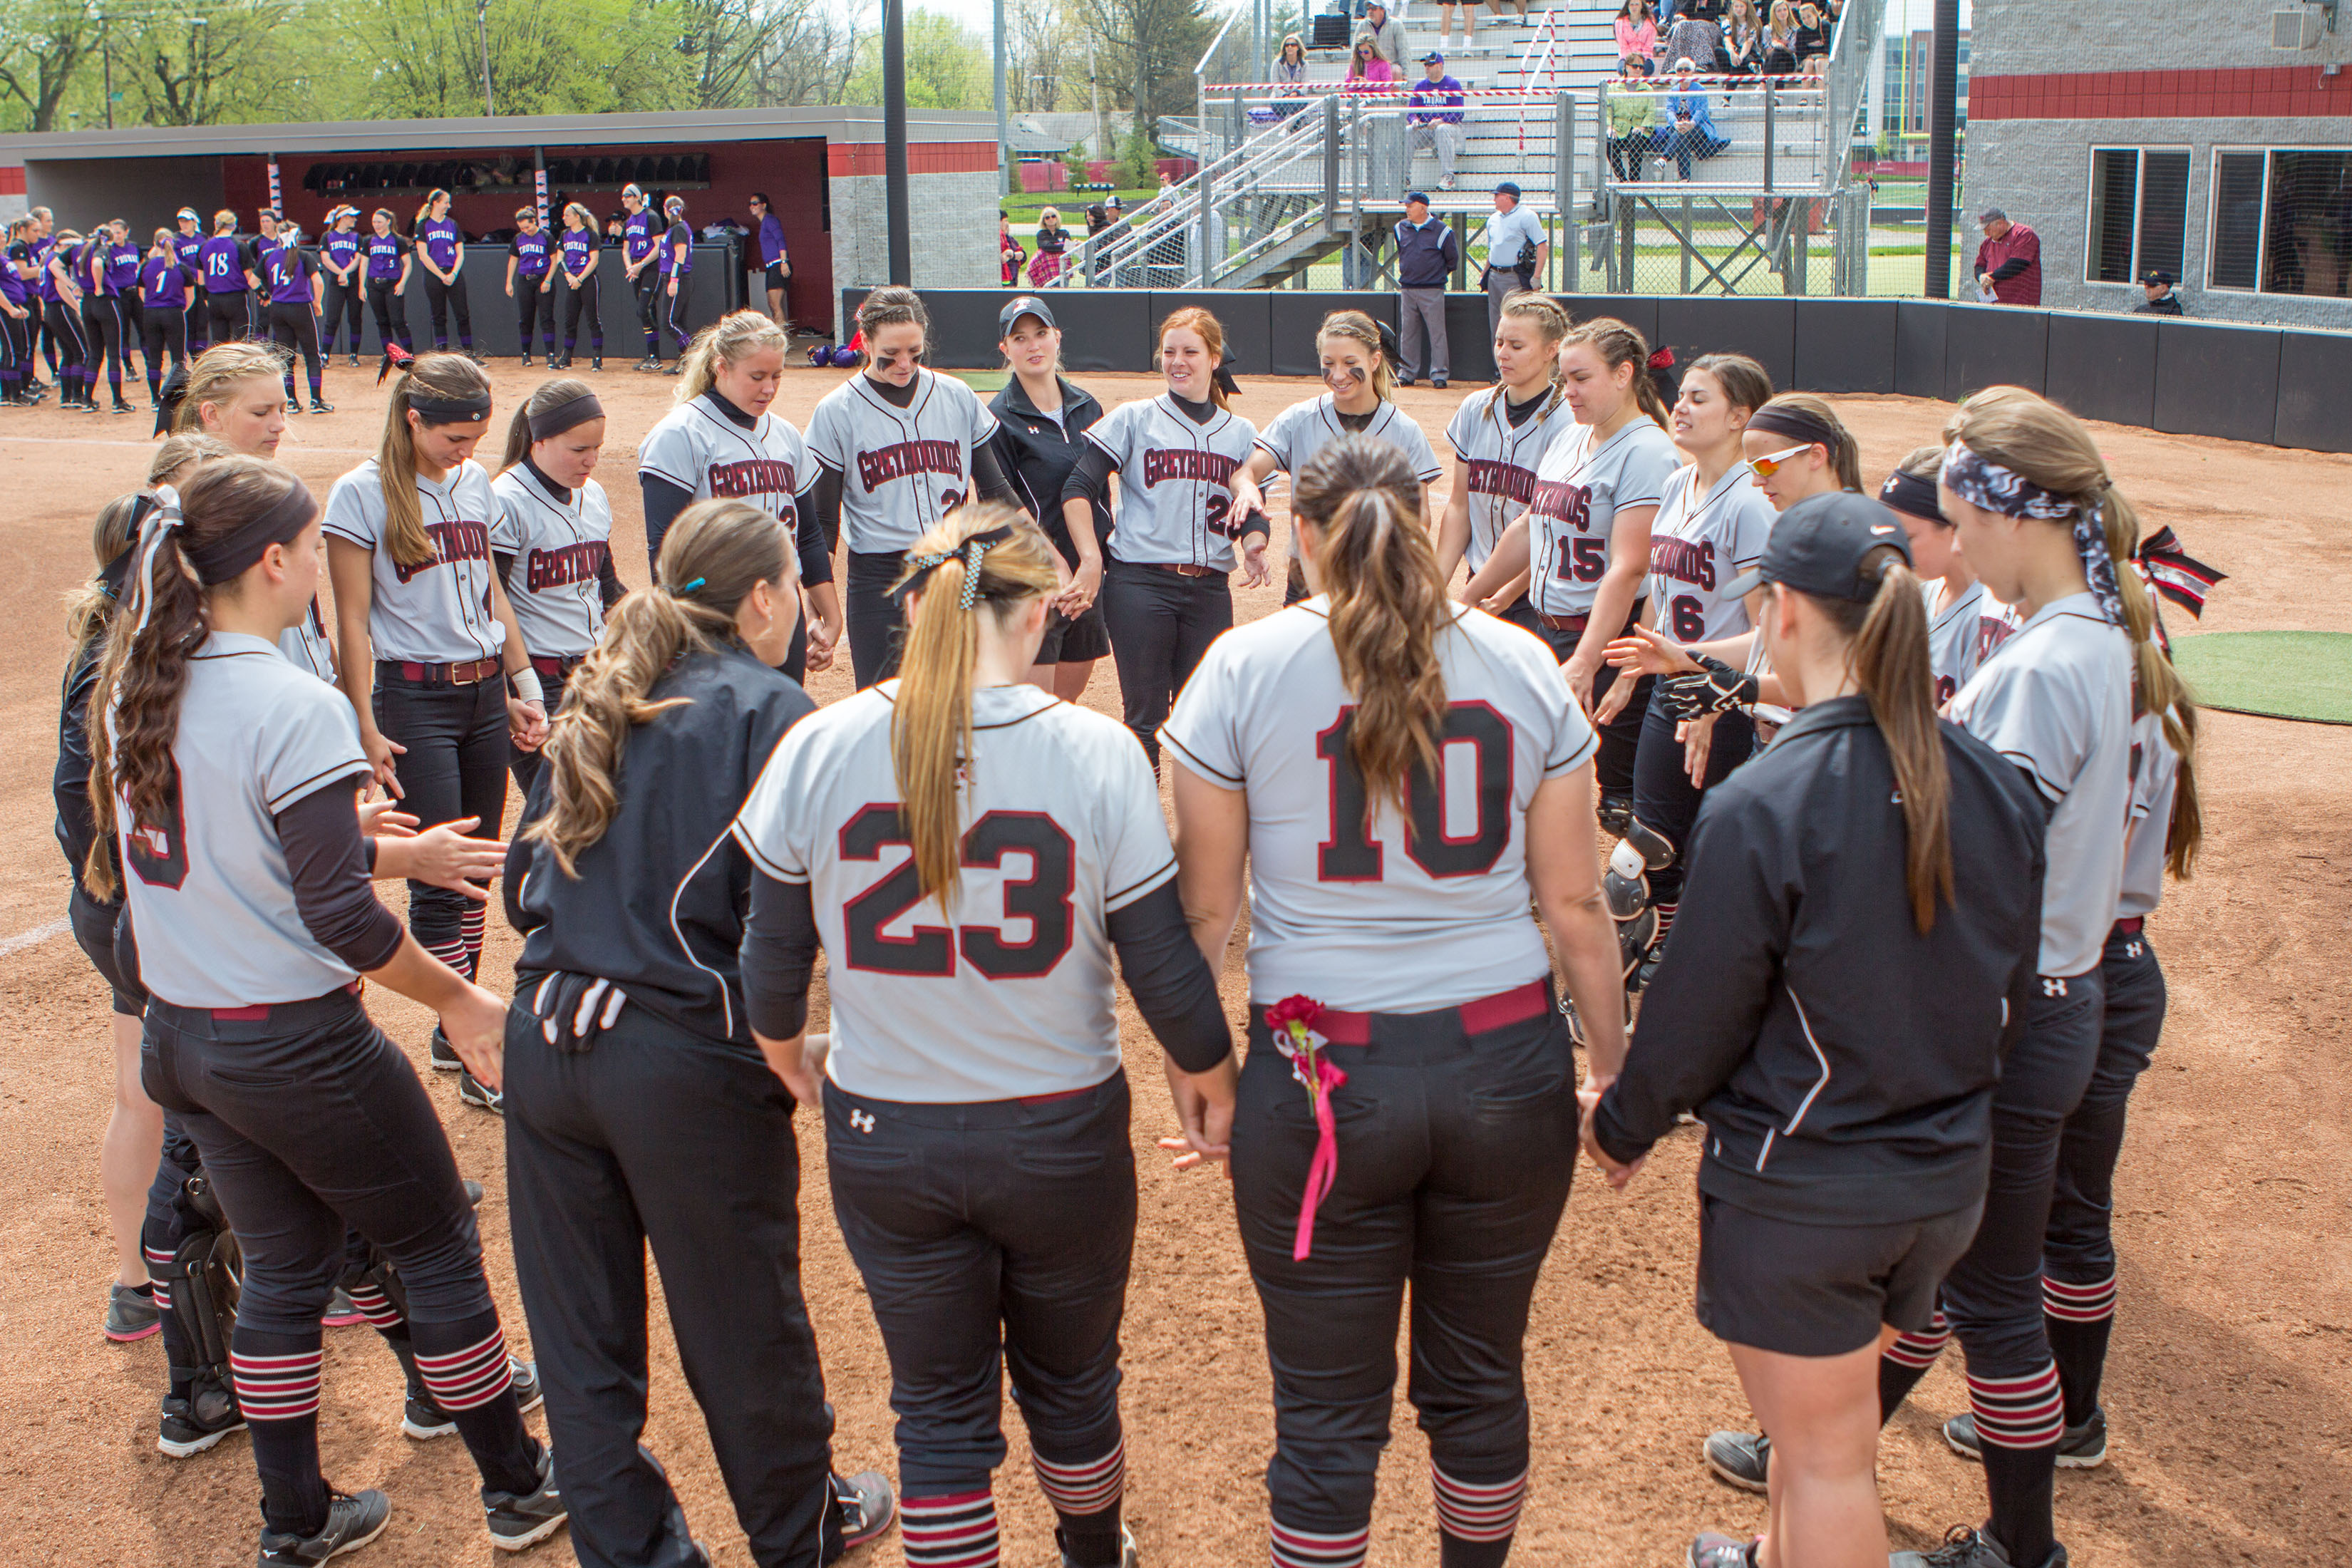 The Greyhounds circled up before the start of the game against Truman State University on Saturday, April 23. UIndy honored its seniors prior to the start of the game. The Hounds beat the Bulldogs 5-1 and 3-2. Photo by Kameron Casey